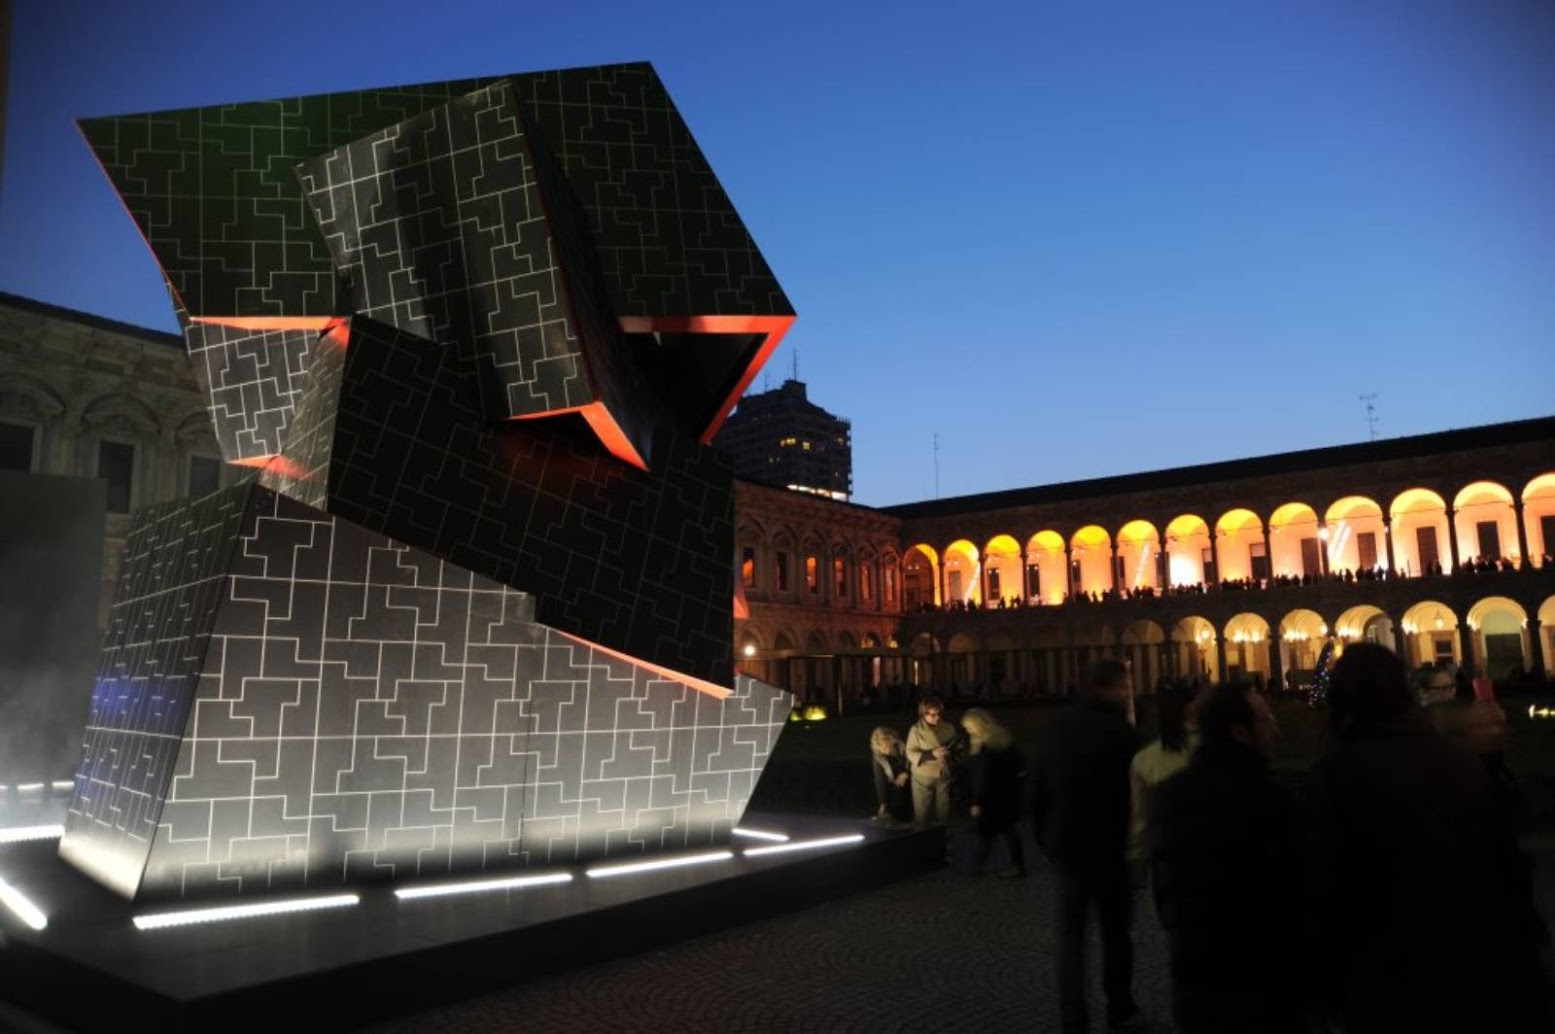 Milano, Italia: [BEYOND THE WALL BY DANIEL LIBESKIND]